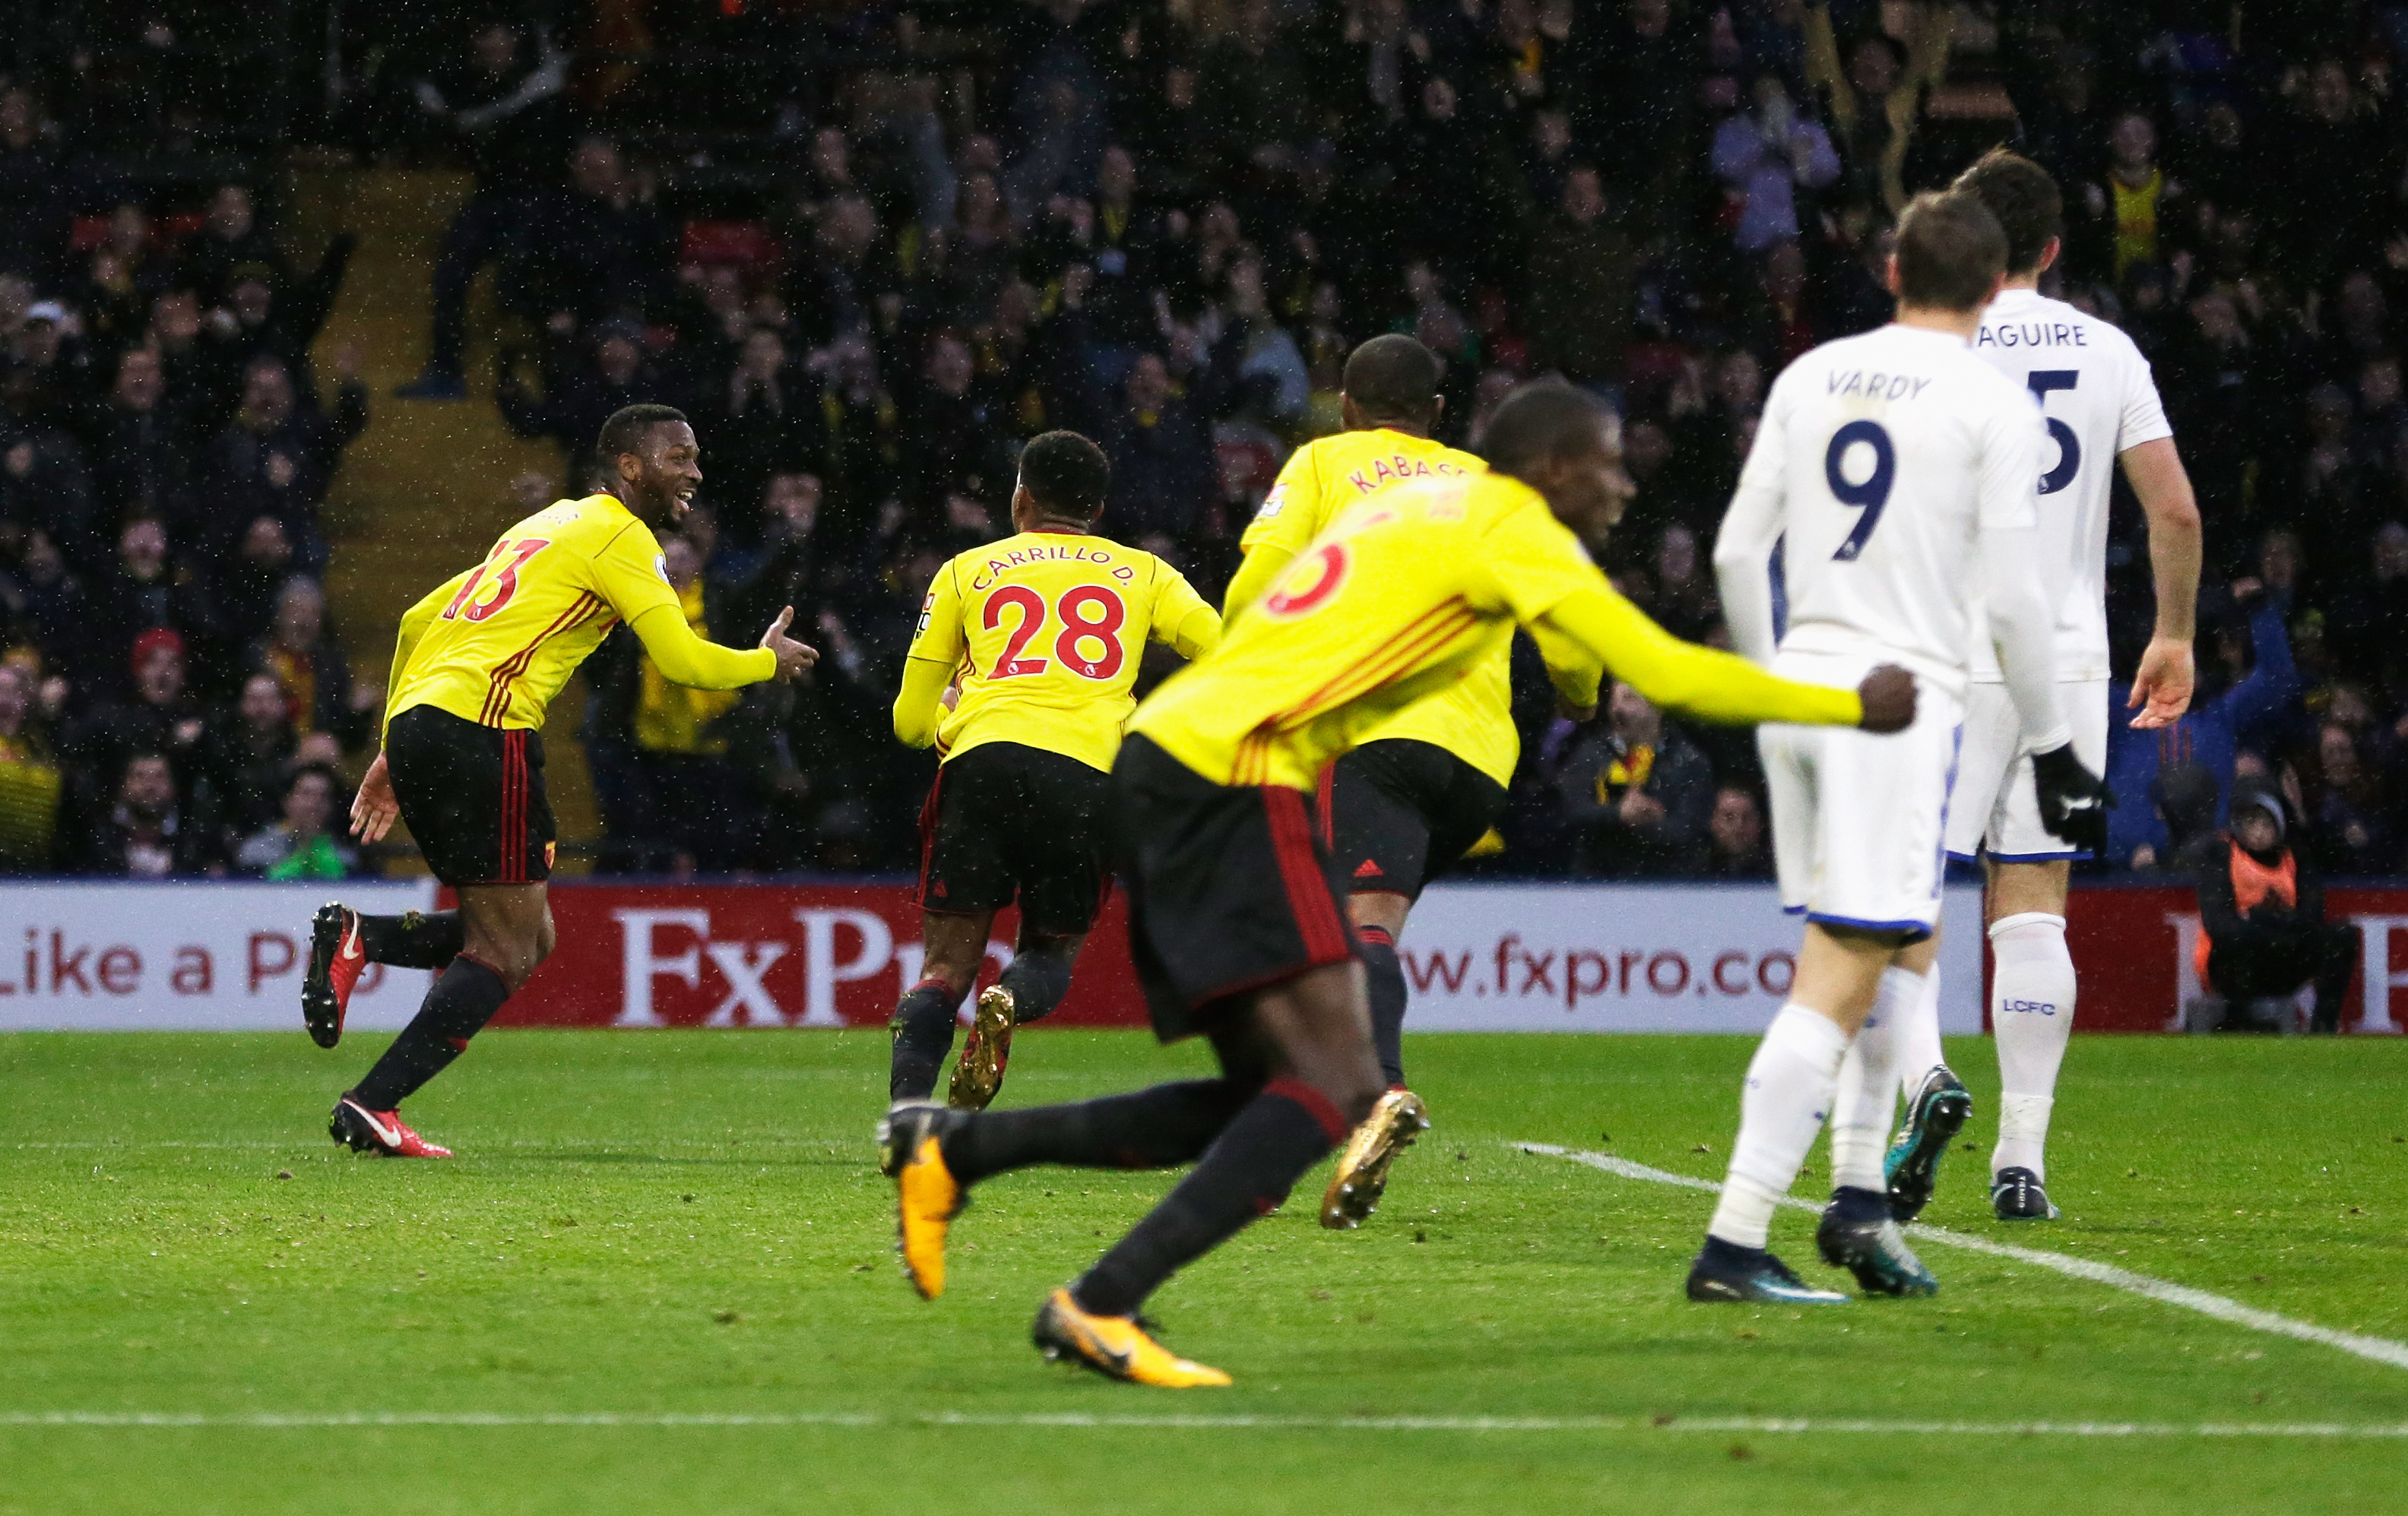 Watford come from behind to beat Leicester 2-1 in EPL